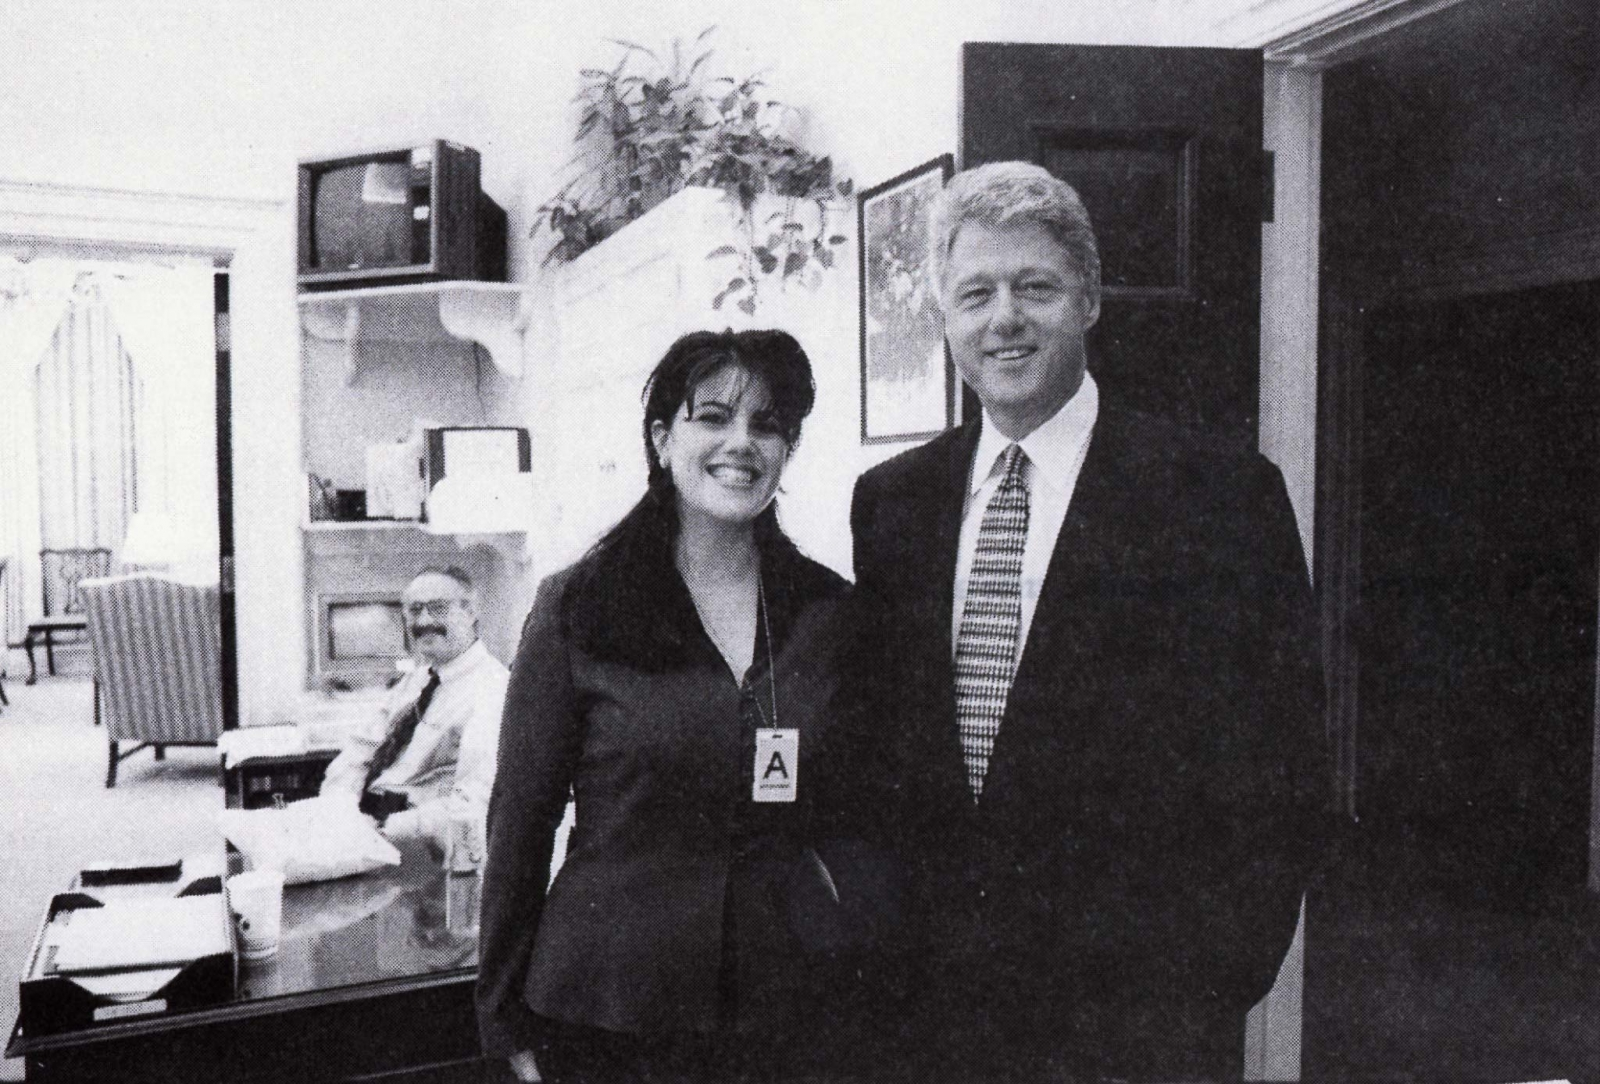 a report on clinton sex scandal Catnip for the media: bill clinton's tangential tie to an appalling sex scandal girls as sex slaves, according to press reports that.